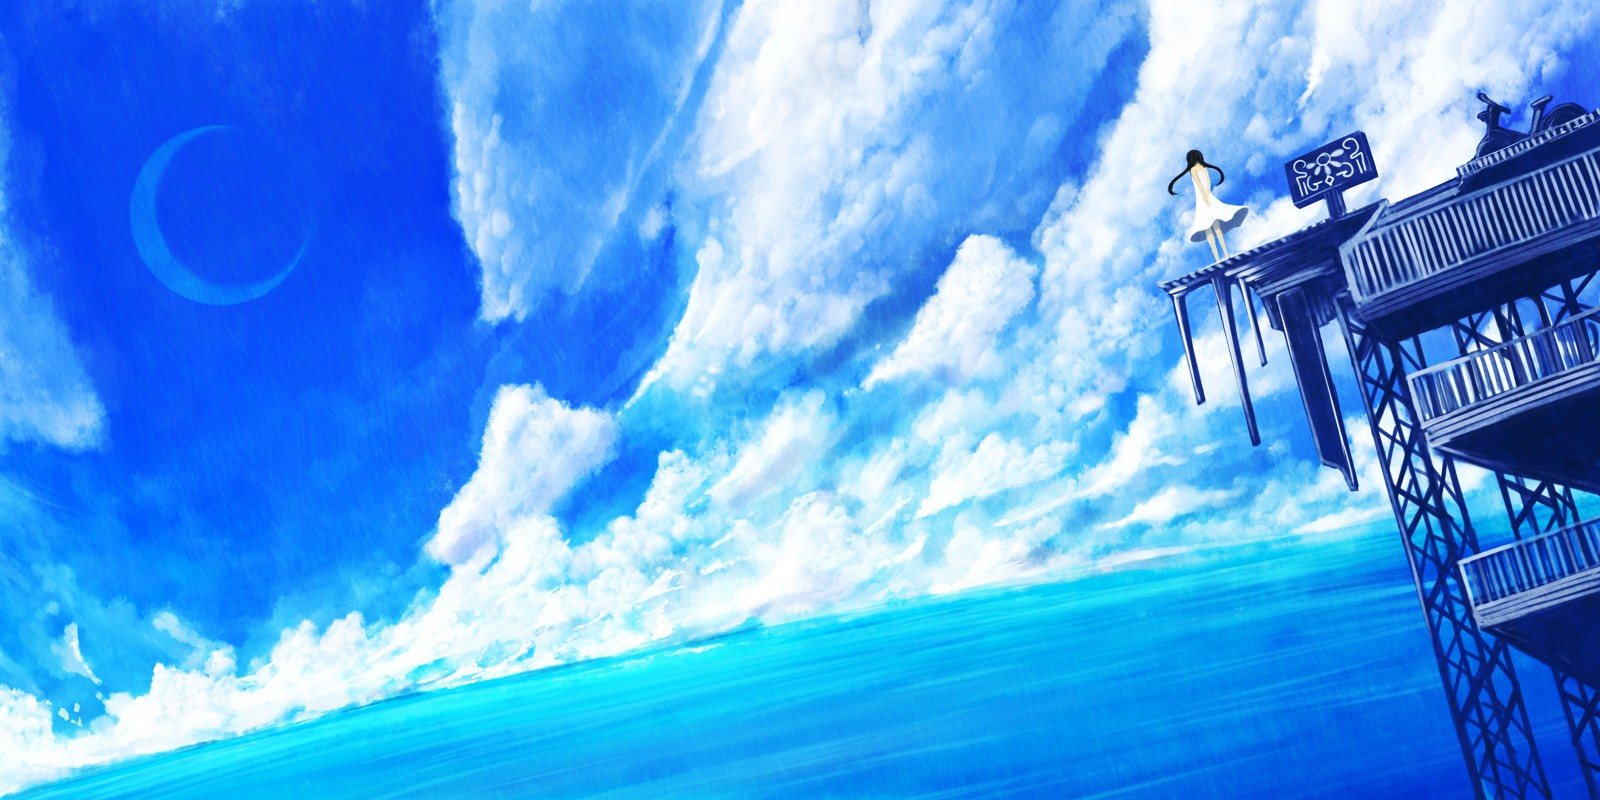 Blue Anime Scenery Wallpaper | 1600x800 | ID:56172